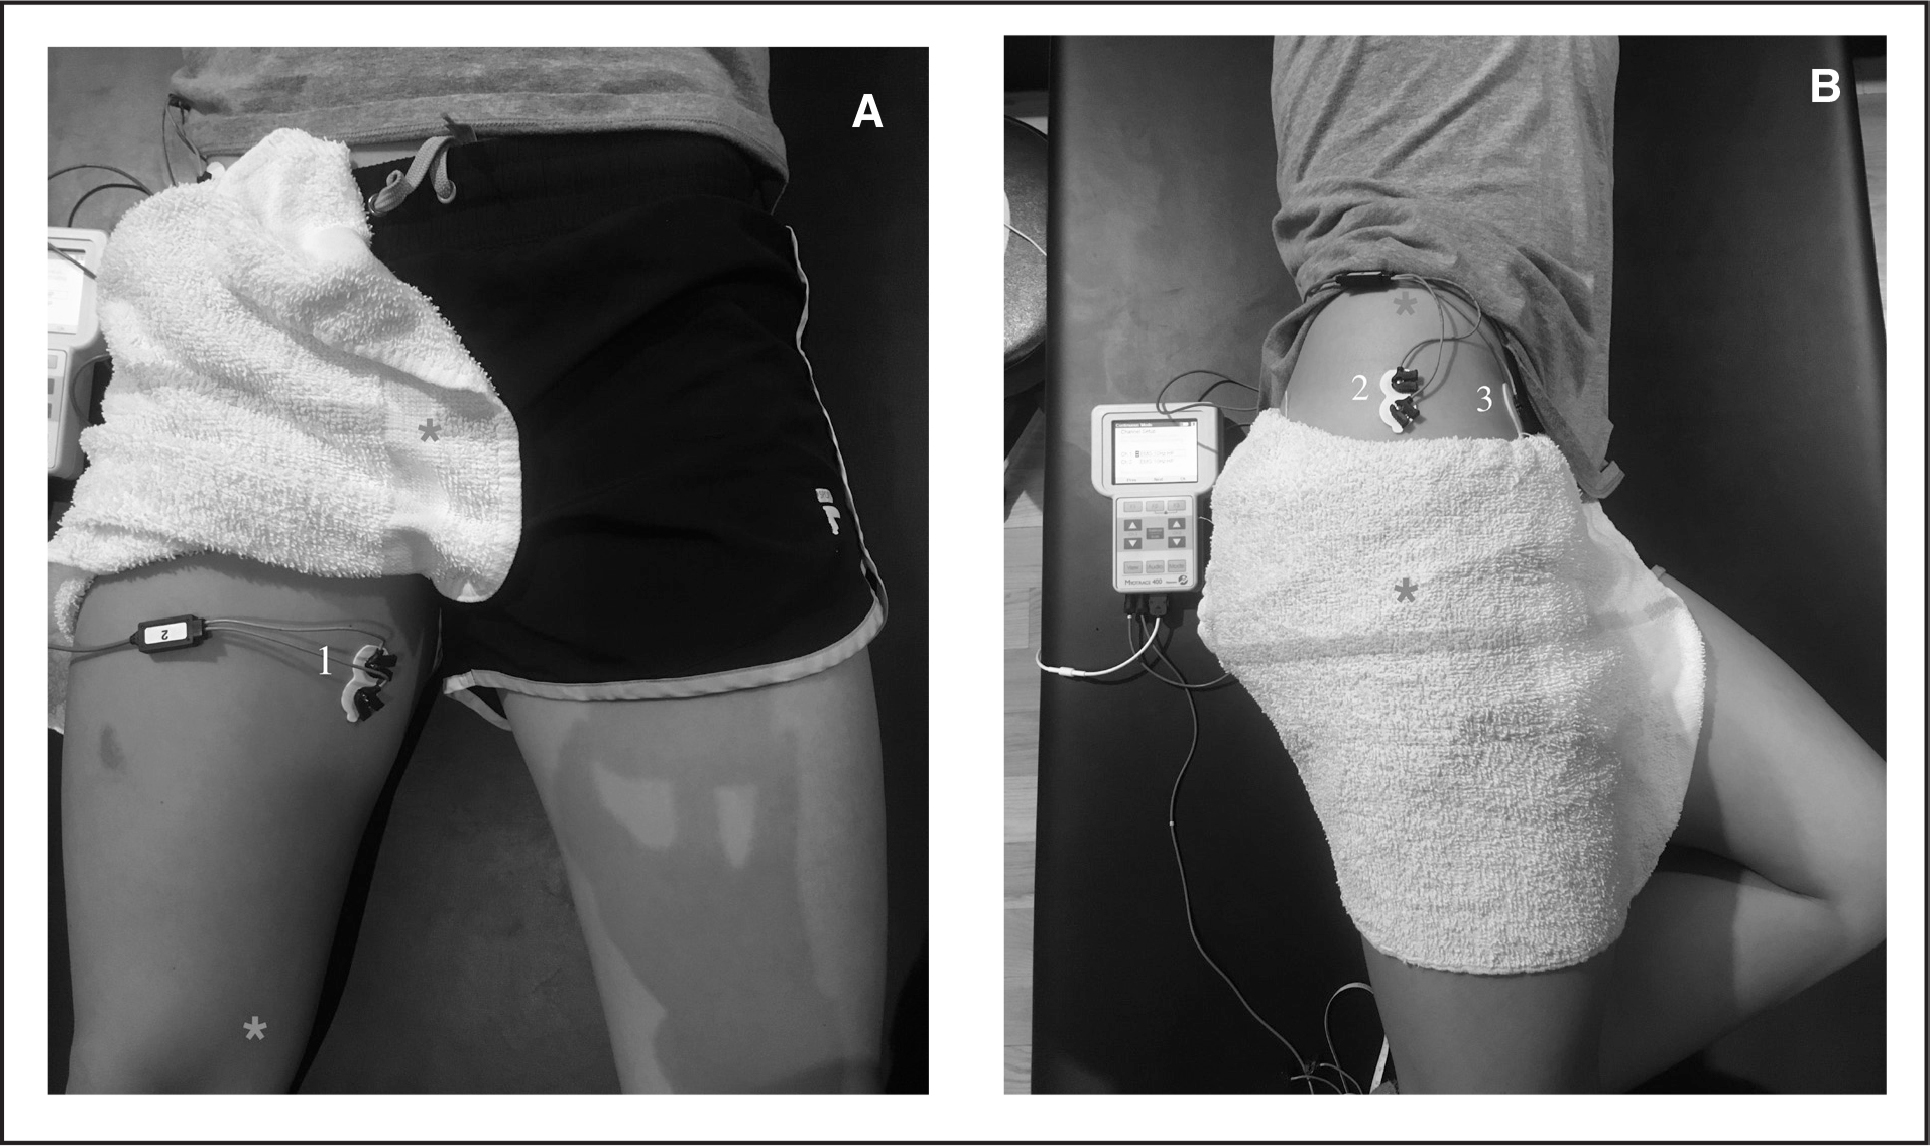 Surface electromyography (sEMG) electrode placement. (A1) Adductor longus electrode (*origin and insertion). (B2) Gluteus medius electrode (*origin and insertion). (B3) Anterior superior iliac spine (reference electrode).